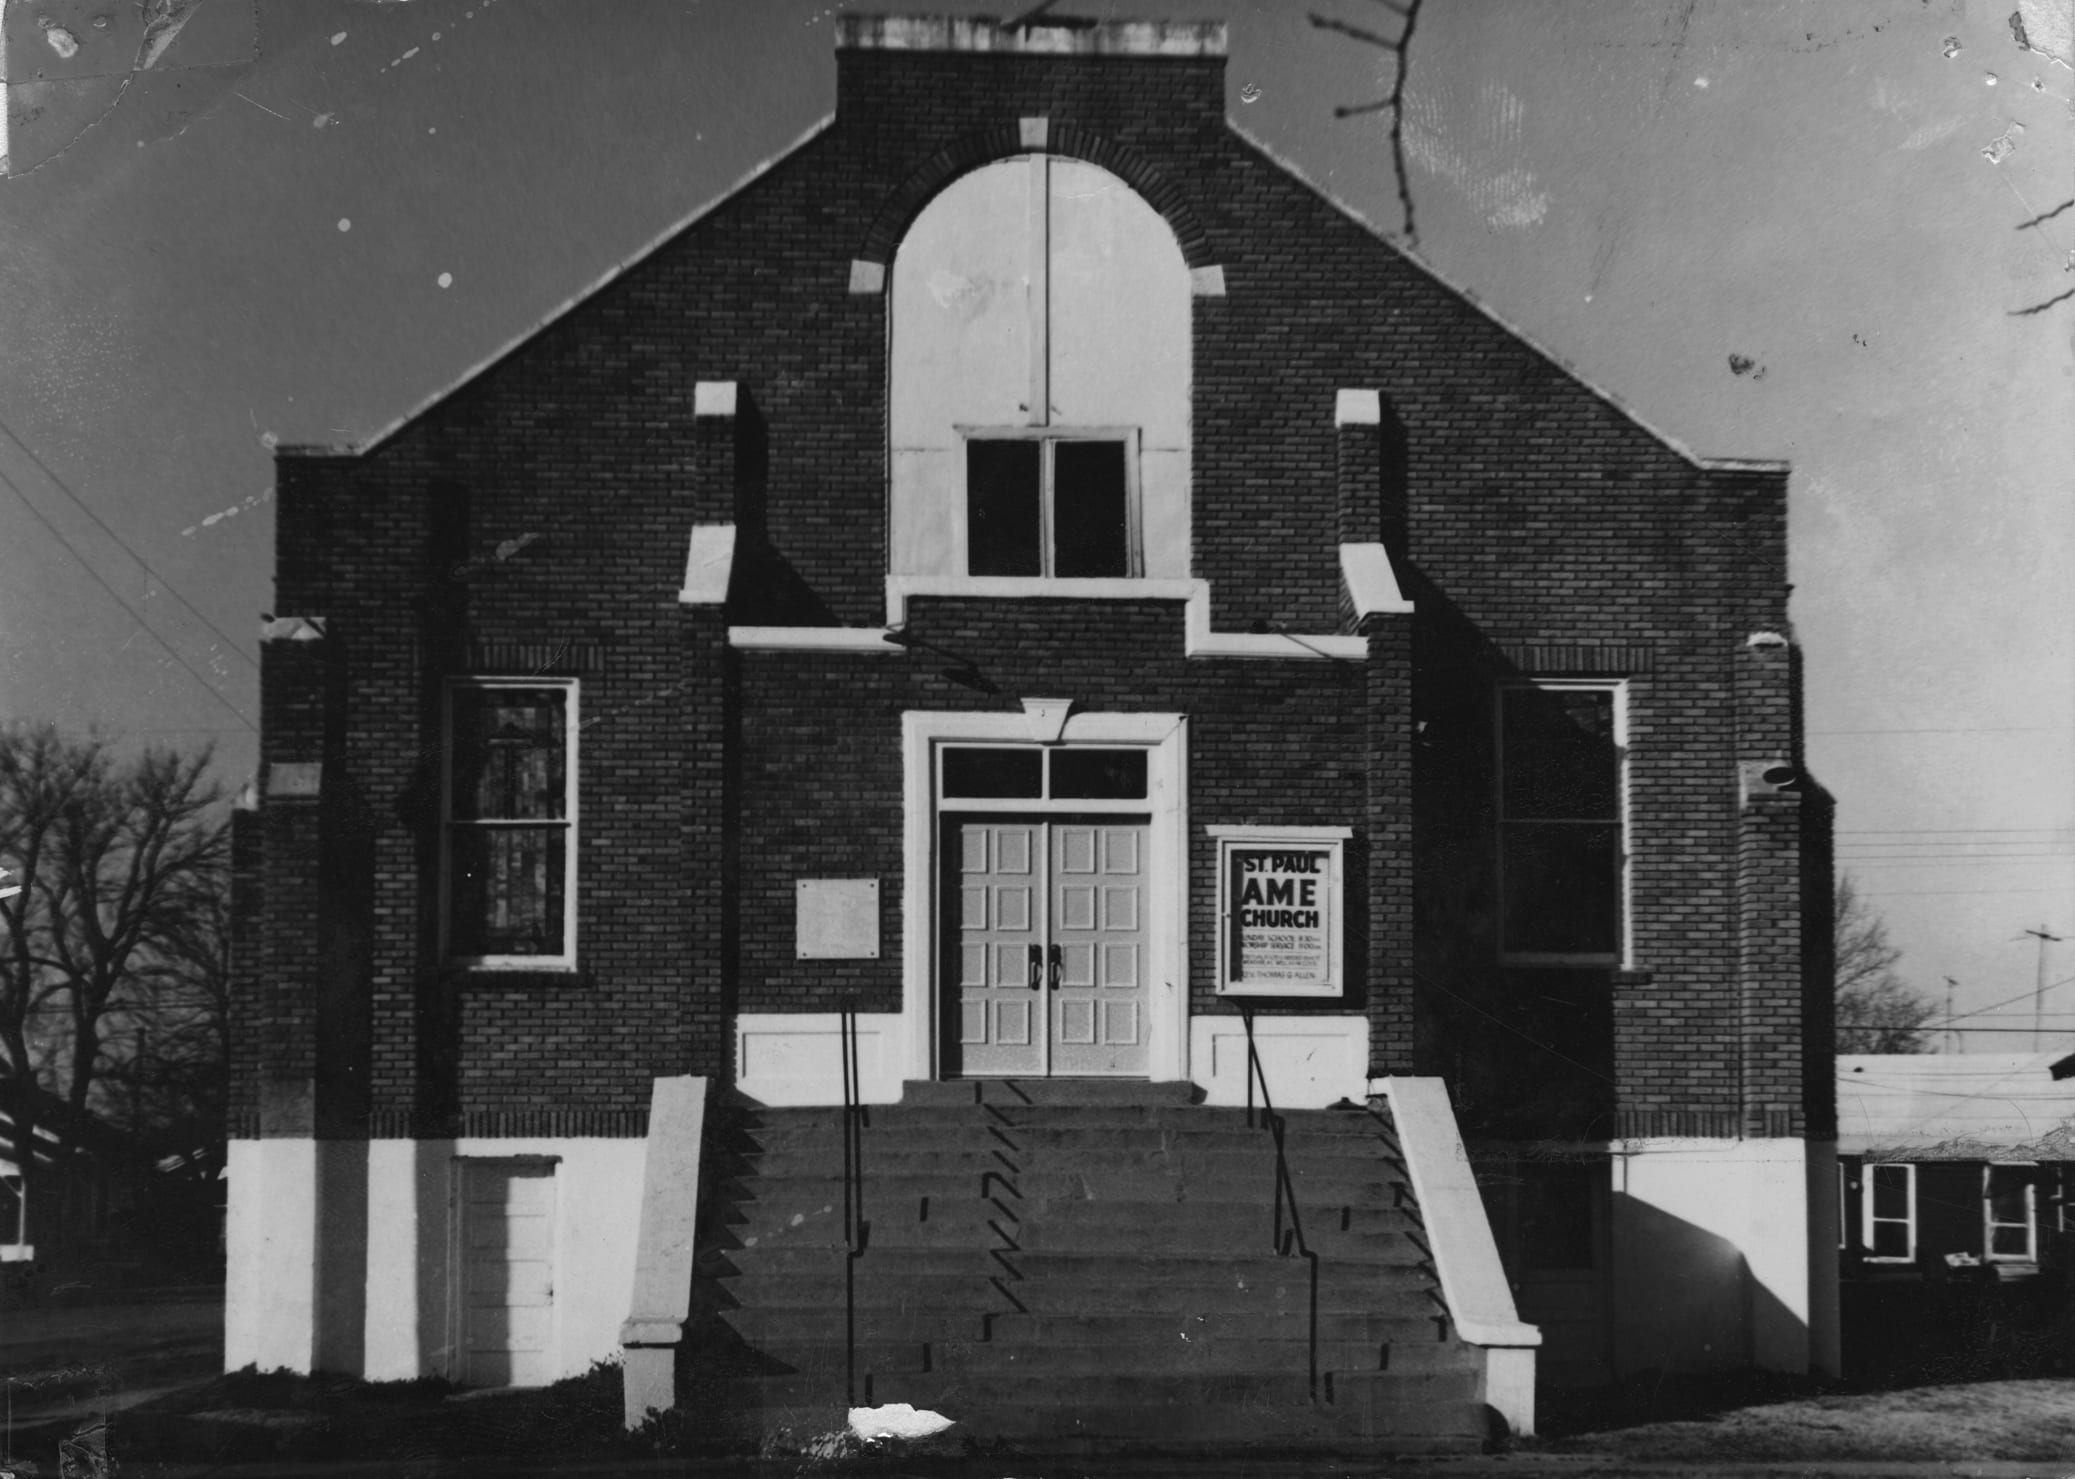 1940's – St. Paul AME Church